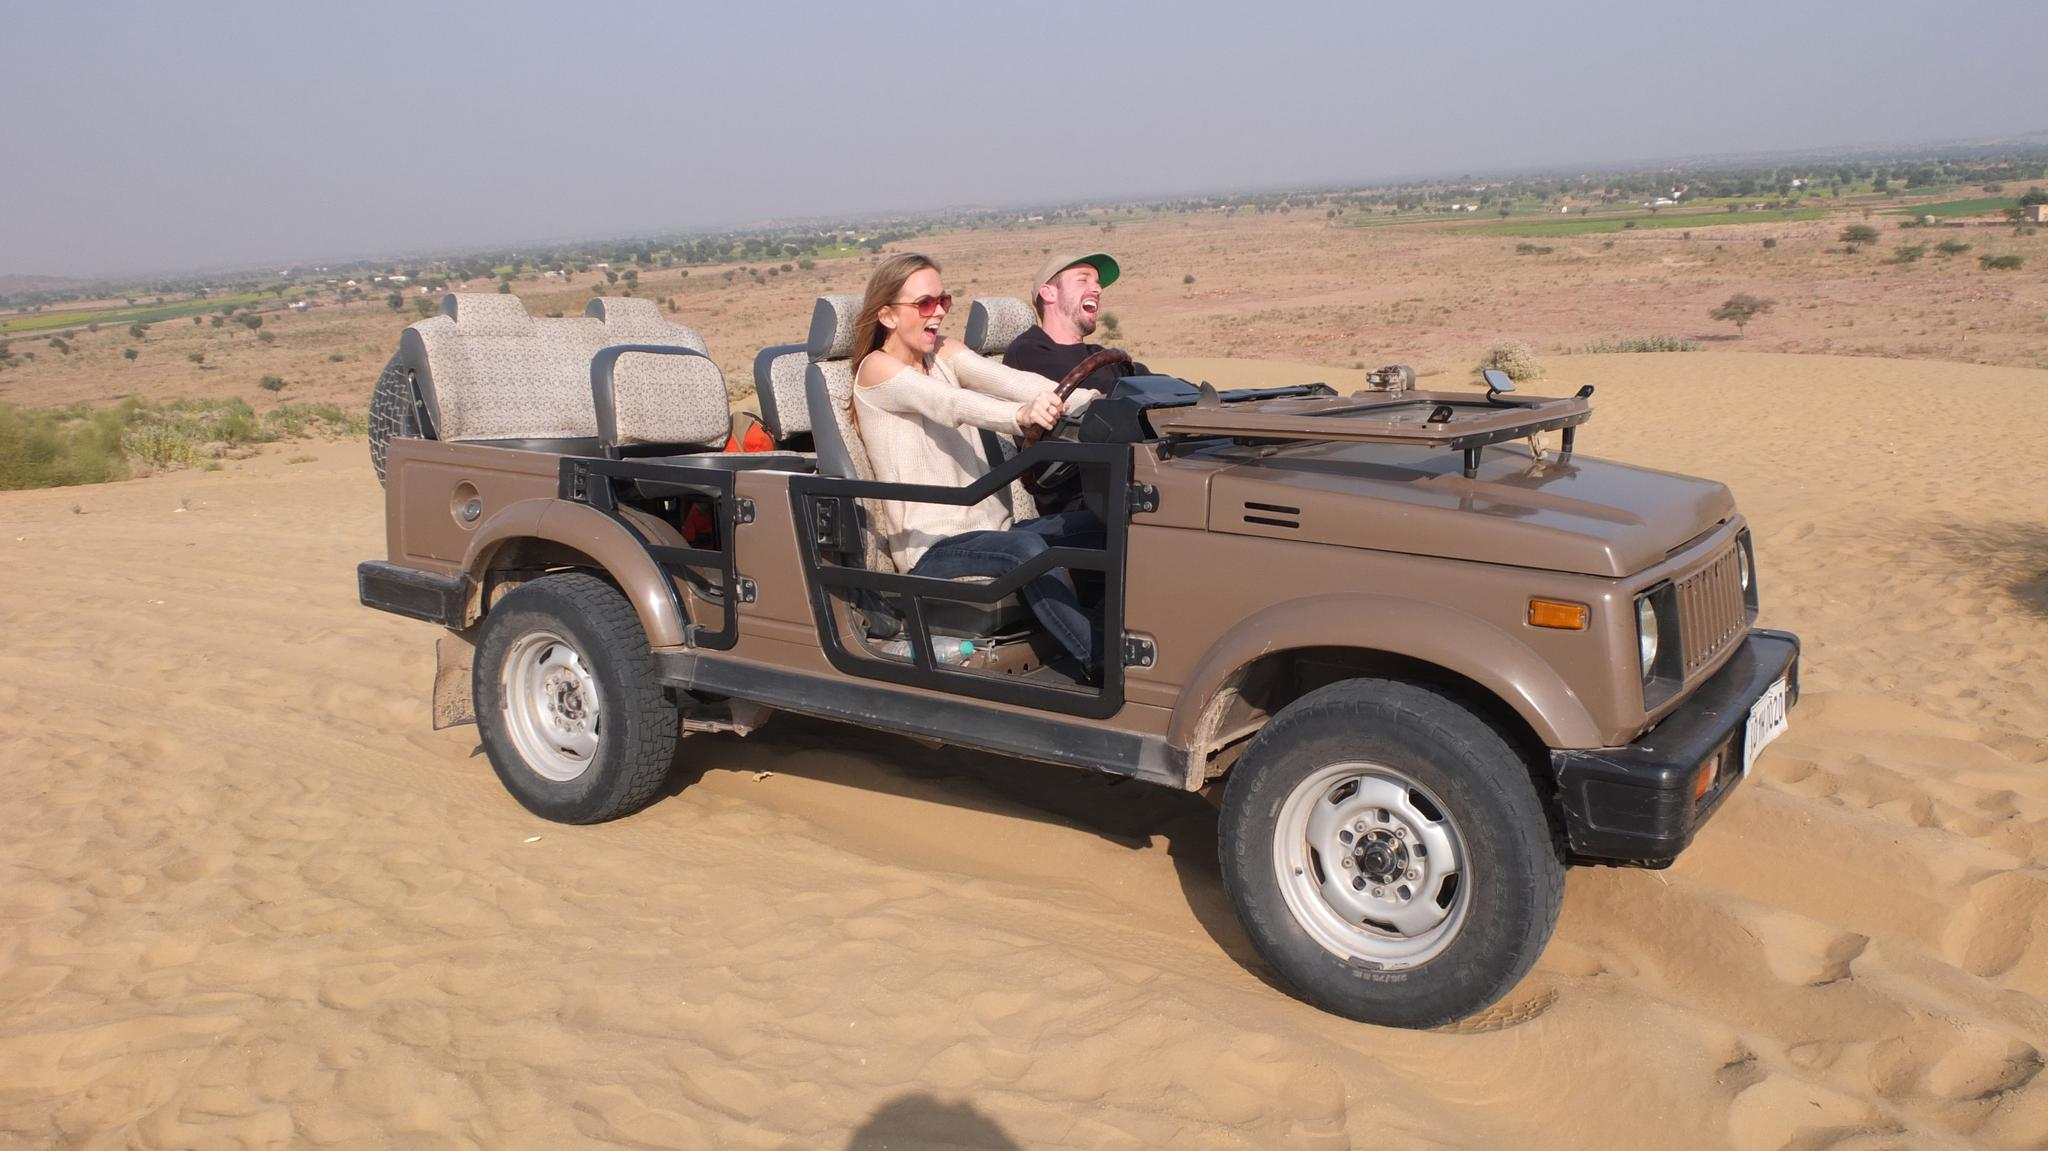 Desert safari in India